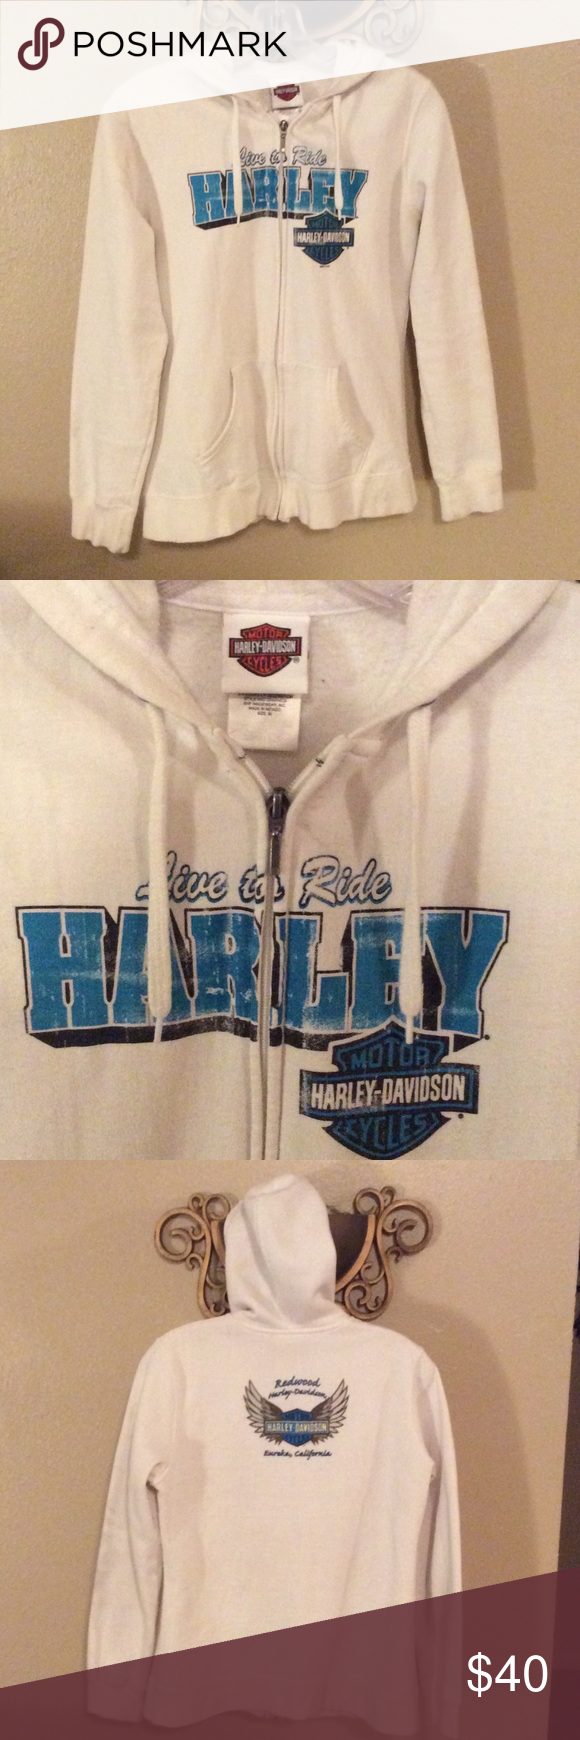 Harley Davidson White Hoodie Harley Davidson, Eureka, CA white. Hooded sweatshirt. Has very few minor discolorations and some pilling in the underarms . Gently used & very comfy, I'm sad to see it go. Harley-Davidson Jackets & Coats